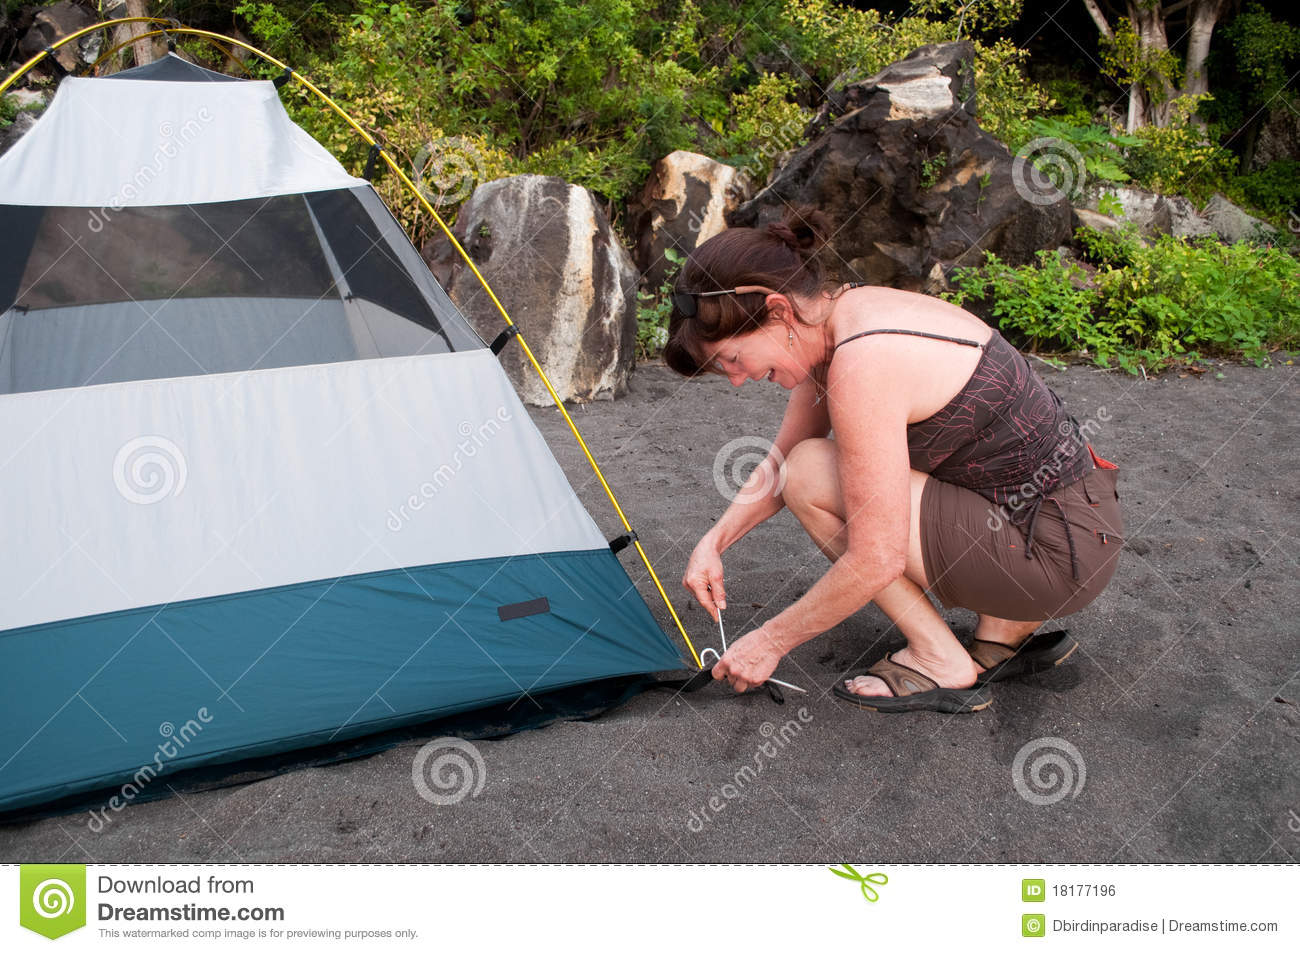 Pitching A Tent-C&ing & Pitching A Tent-Camping stock photo. Image of camping - 18177196